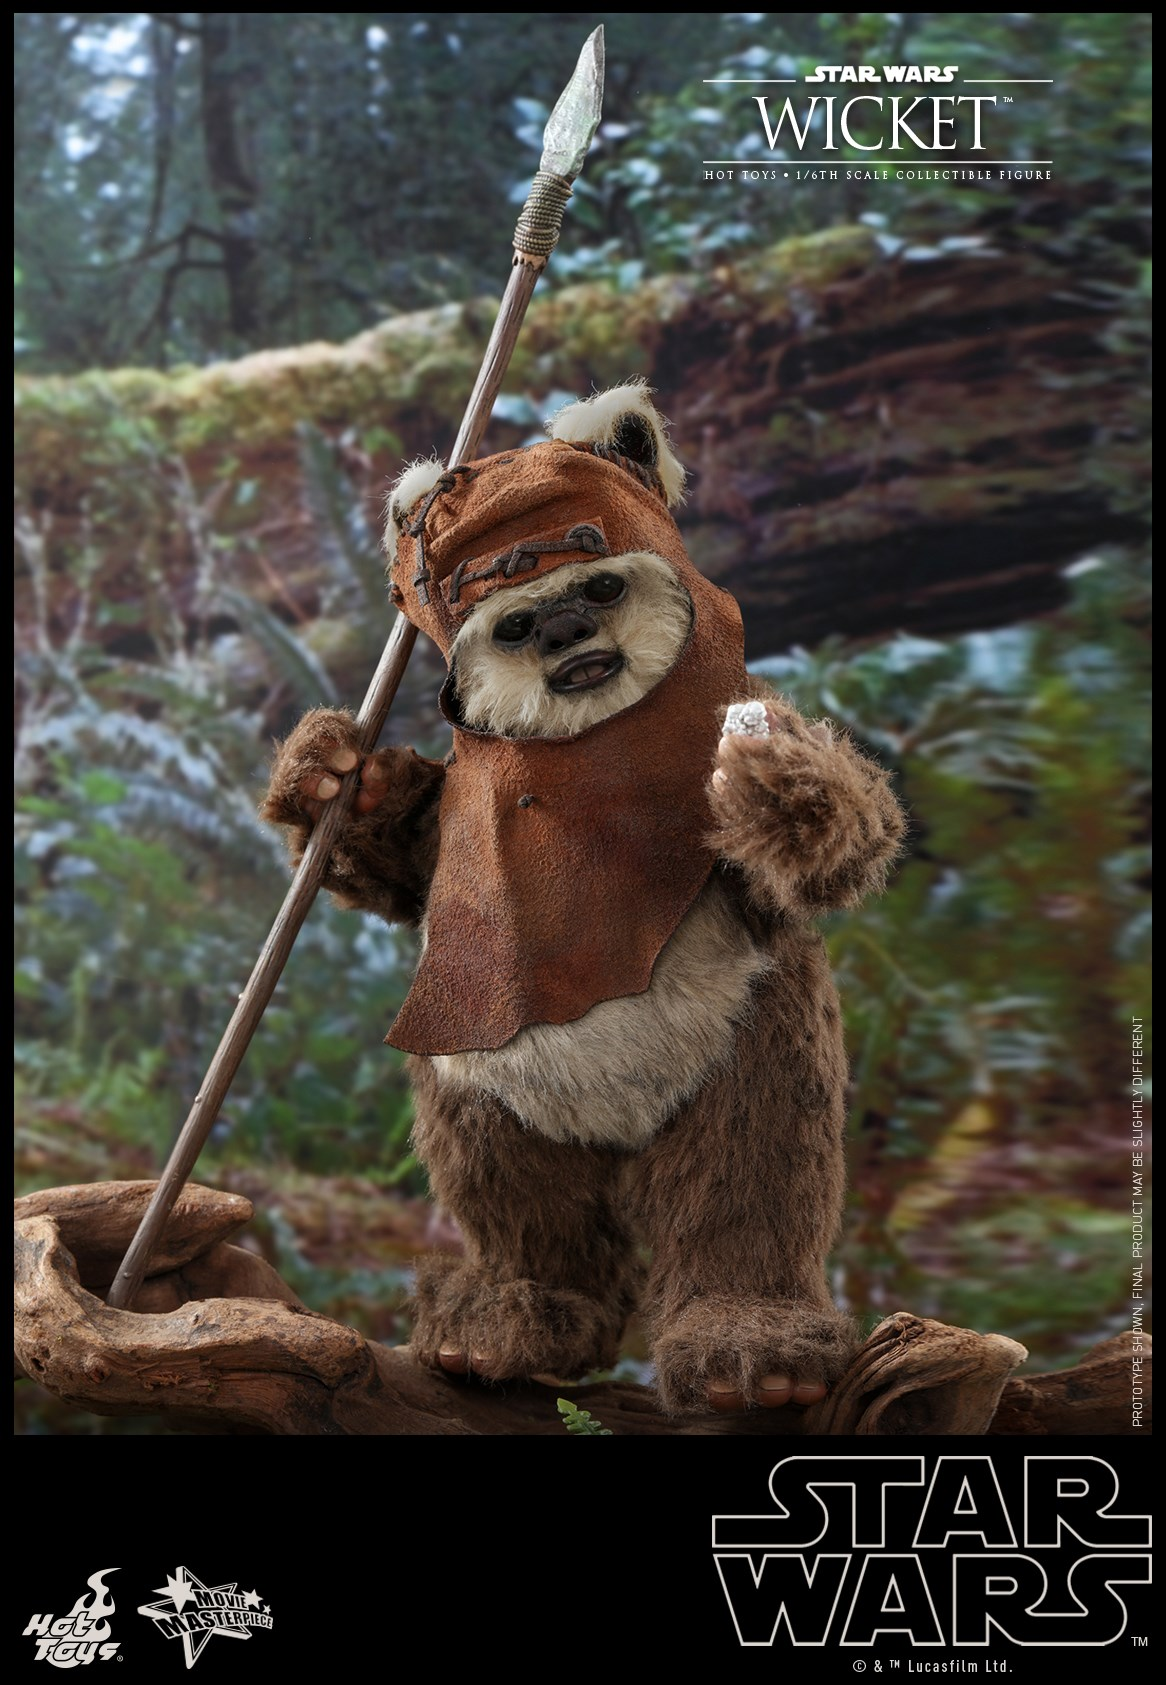 Pre-Order Hot Toys Star Wars Wicket Sixth Scale Figure